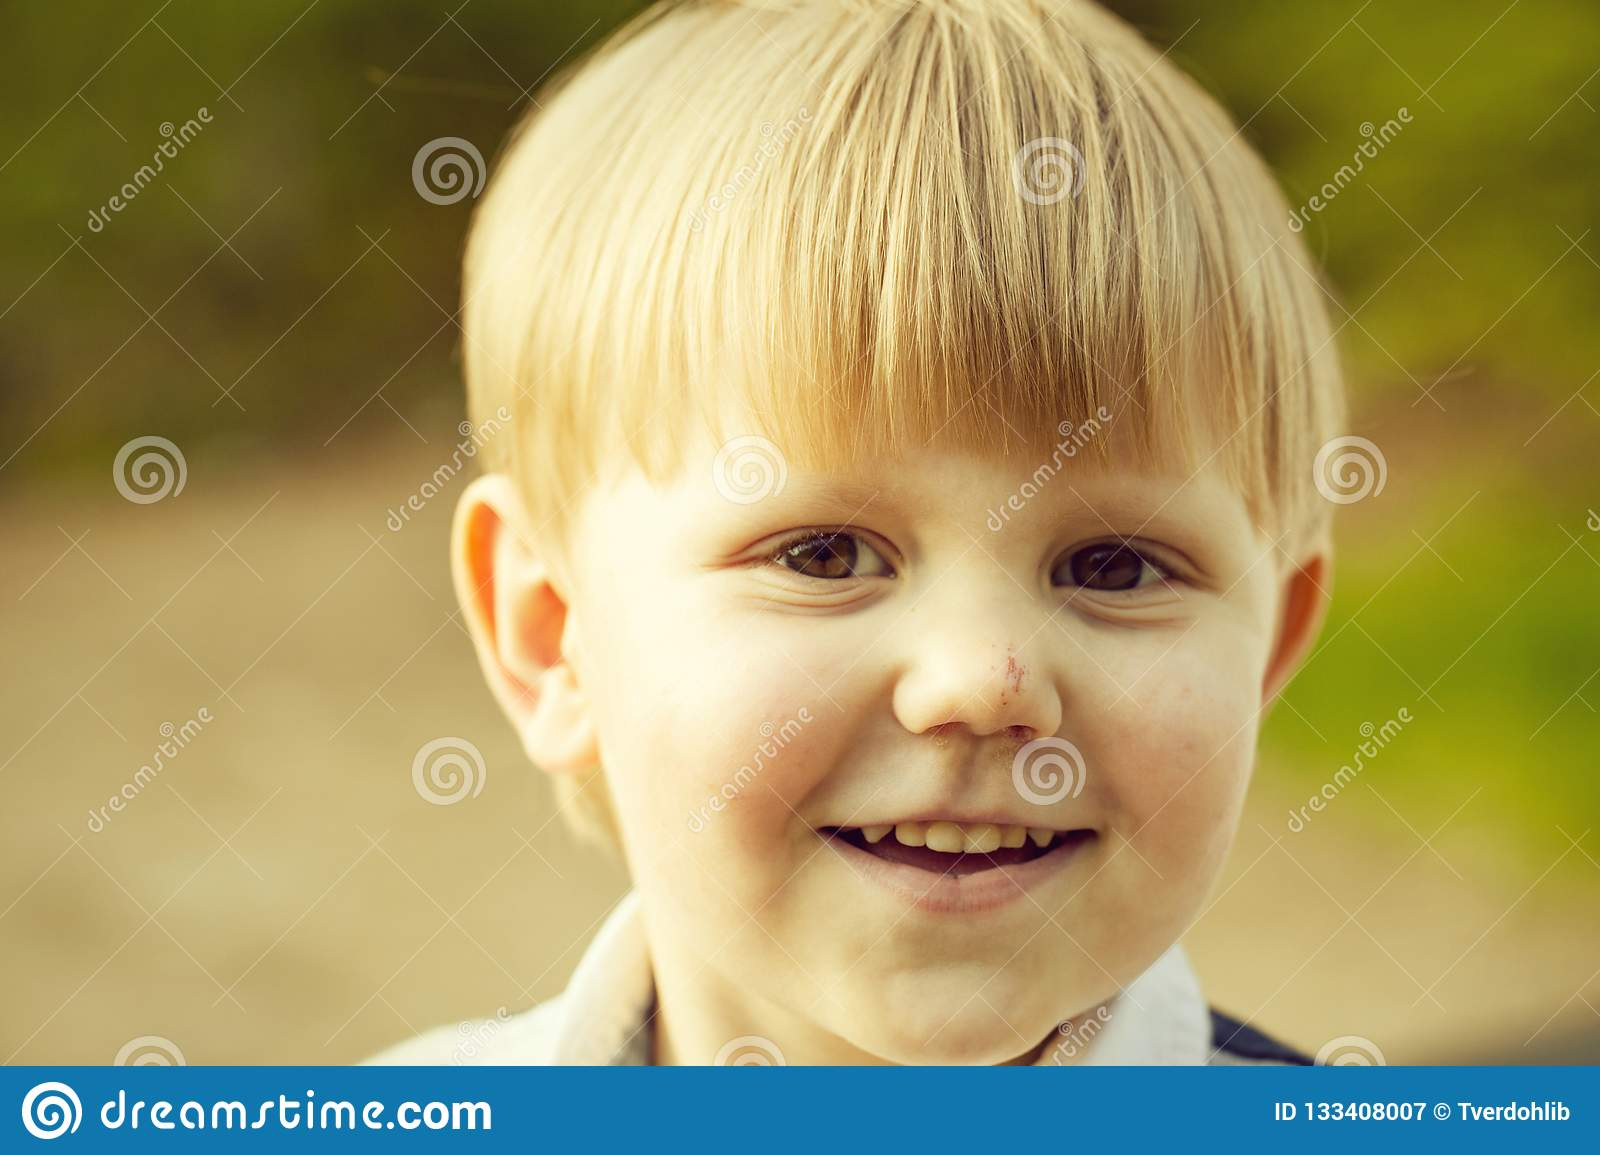 Cute Baby Boy Smiling Stock Image Image Of Human Natural 133408007